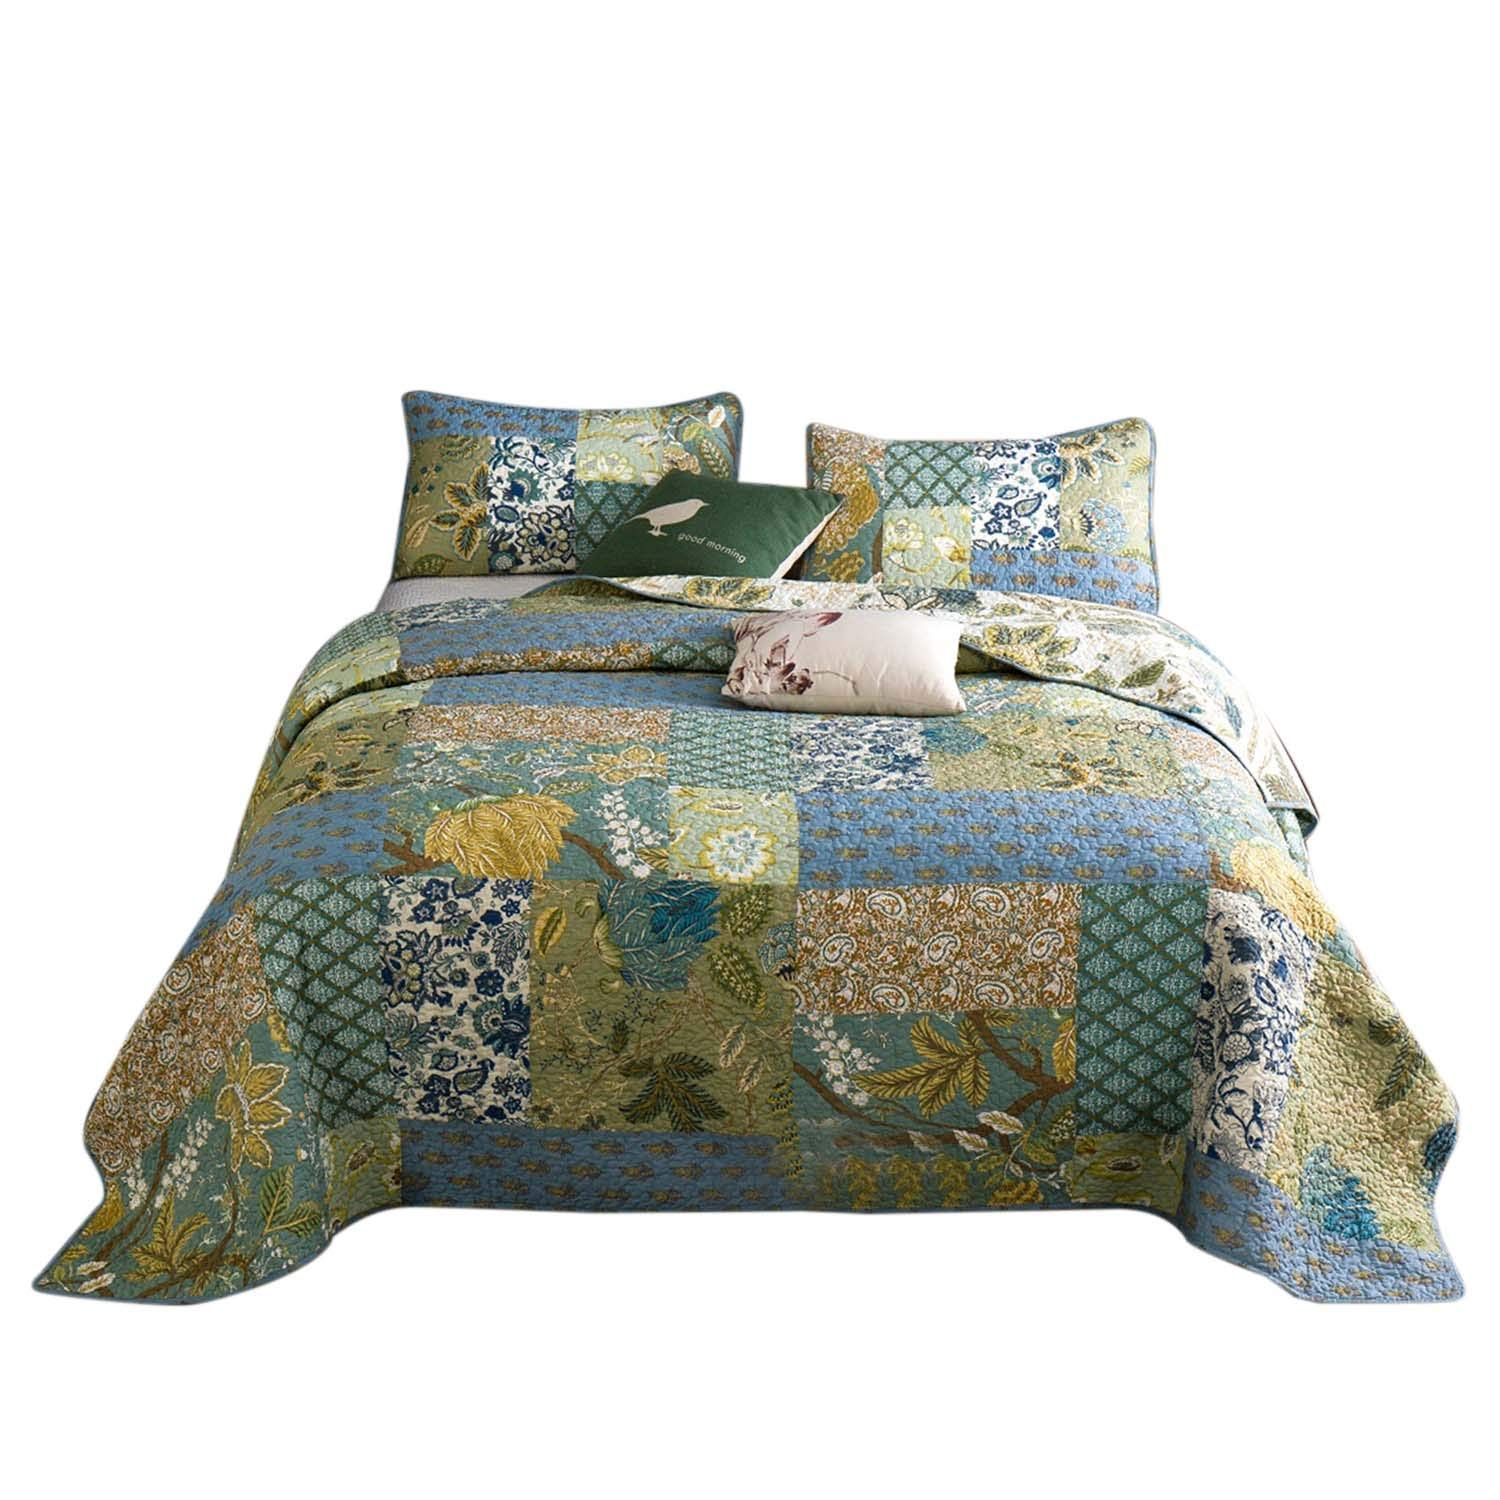 King Size Bedspreads And Quilts